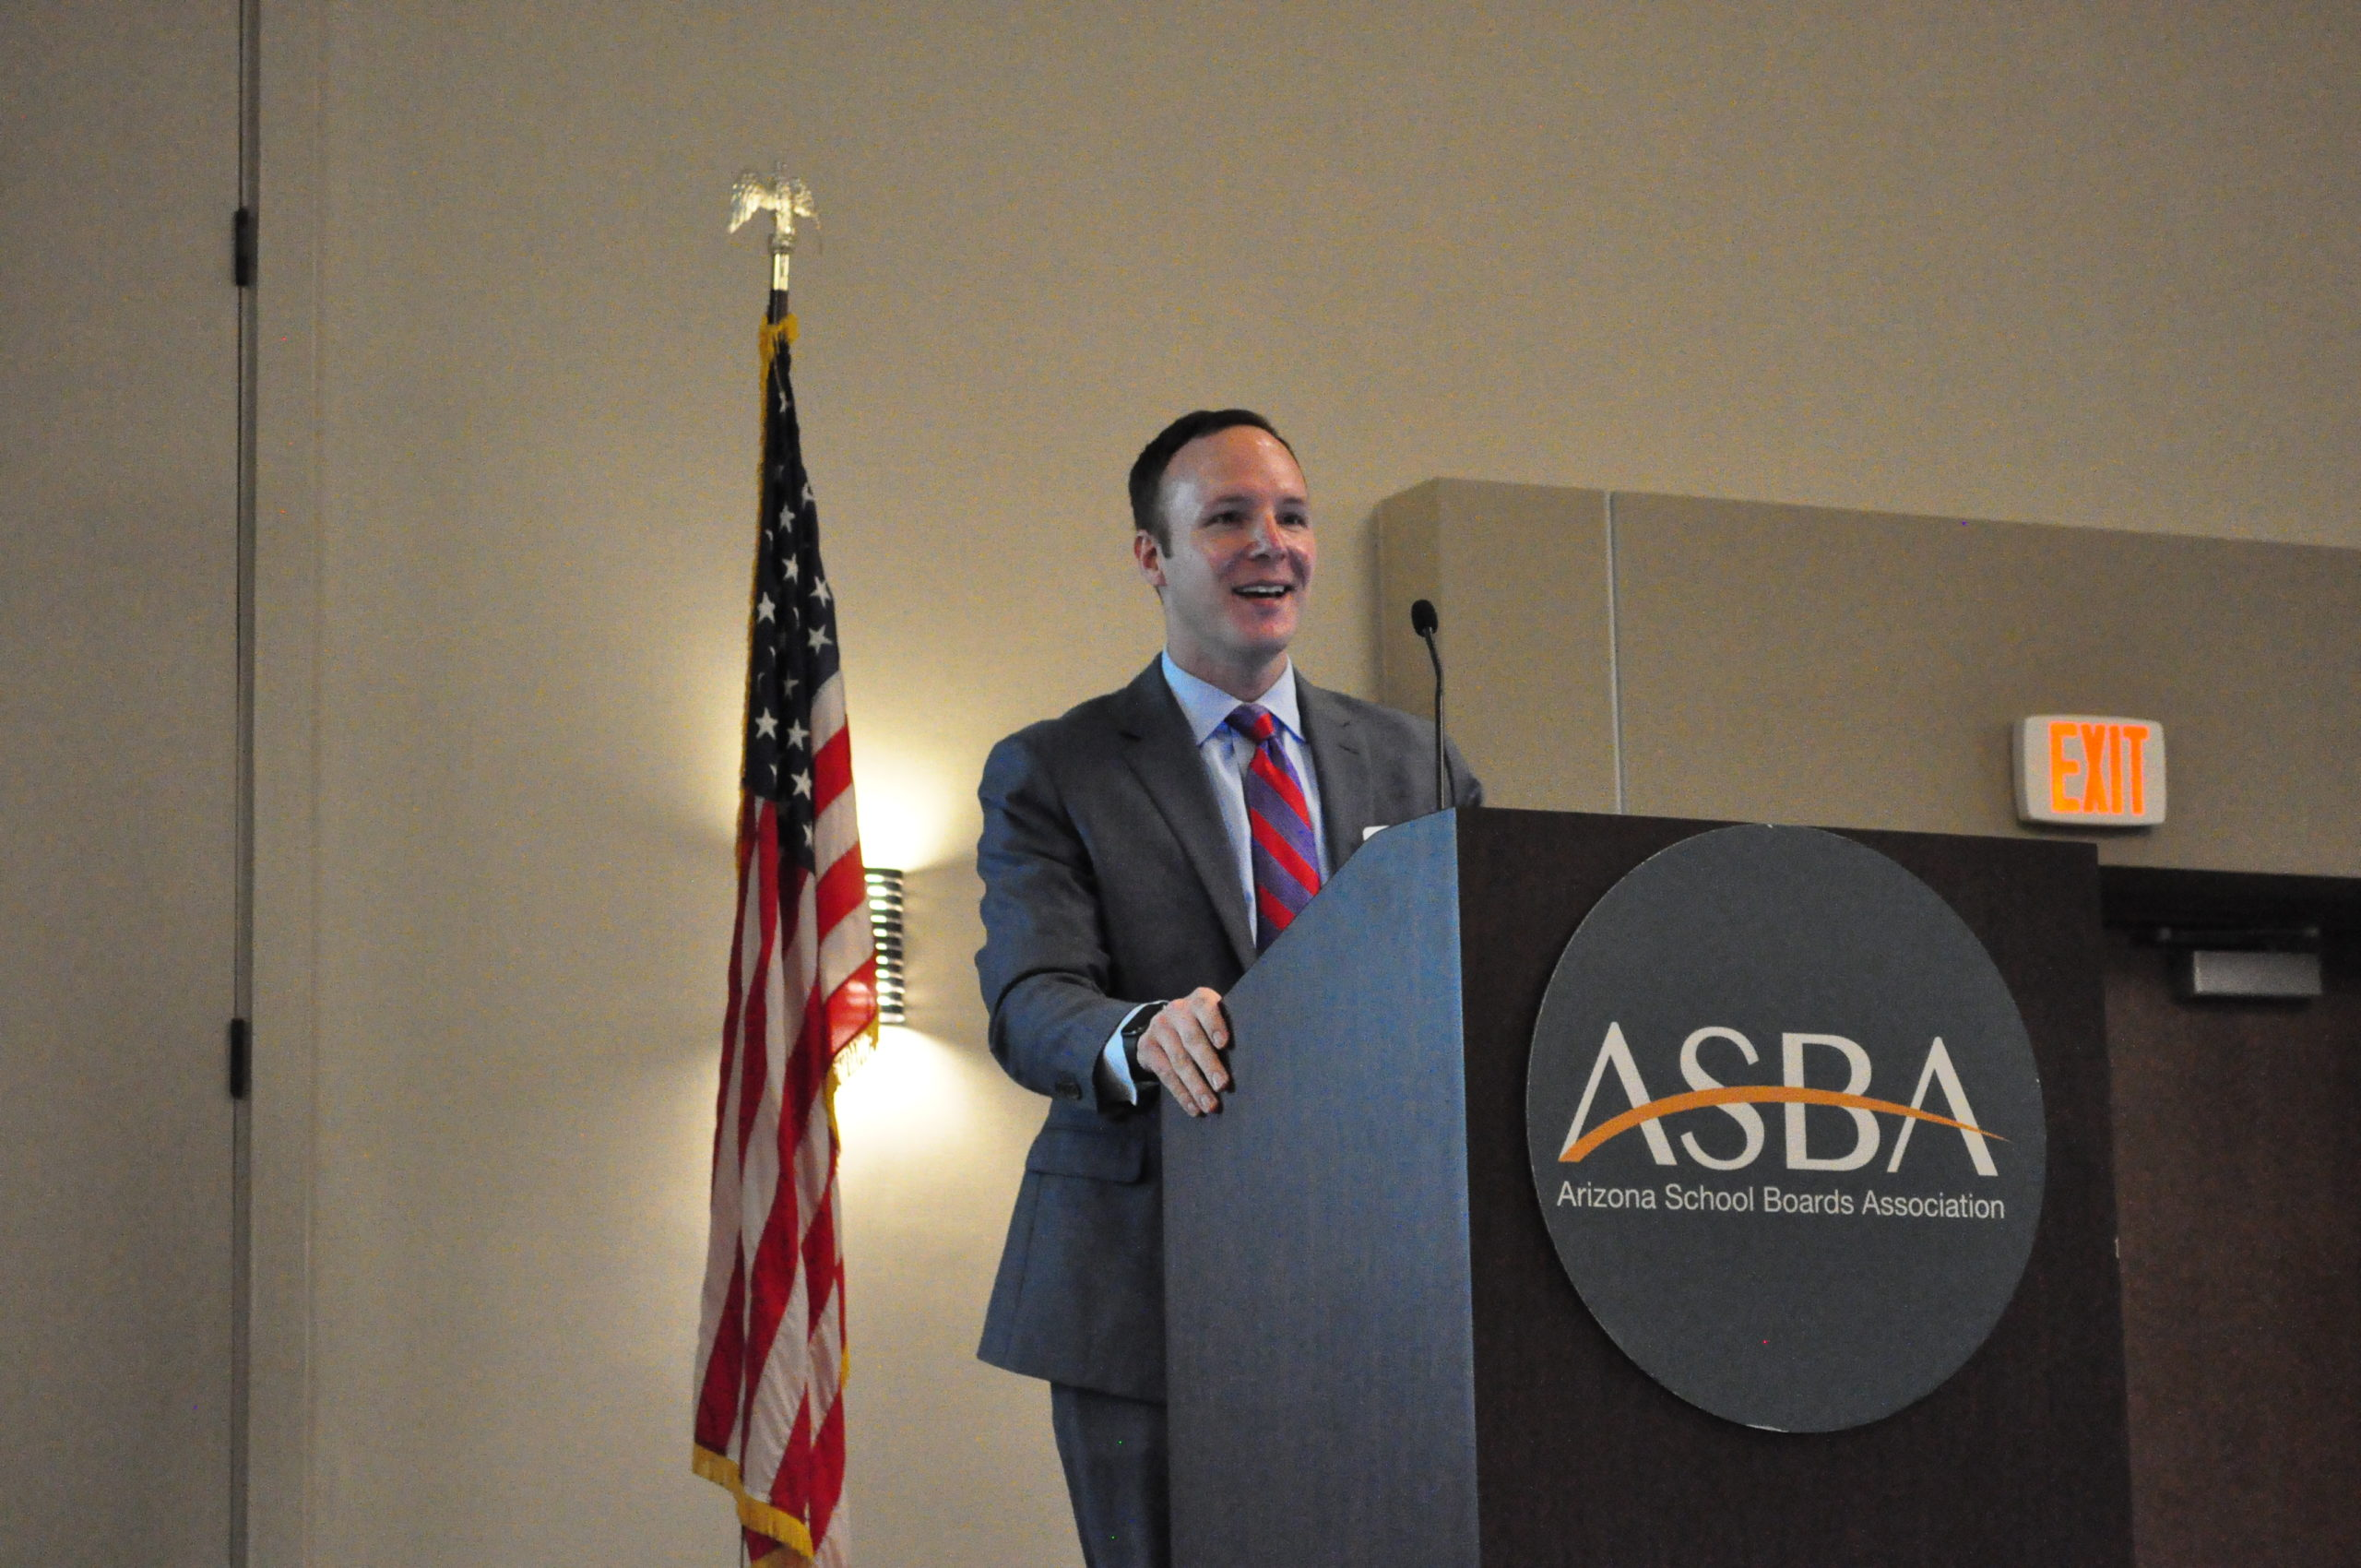 Matt Gress, Director Of The Governor's Office Of Strategic Planning And Budgeting, Talks About General Fund Revenue And The Budget Forecast At The Legislative Workshop Sponsored By Arizona School Boards Association On Nov. 15, 2019 In Mesa. Photo By Lisa Irish/AZEdNews